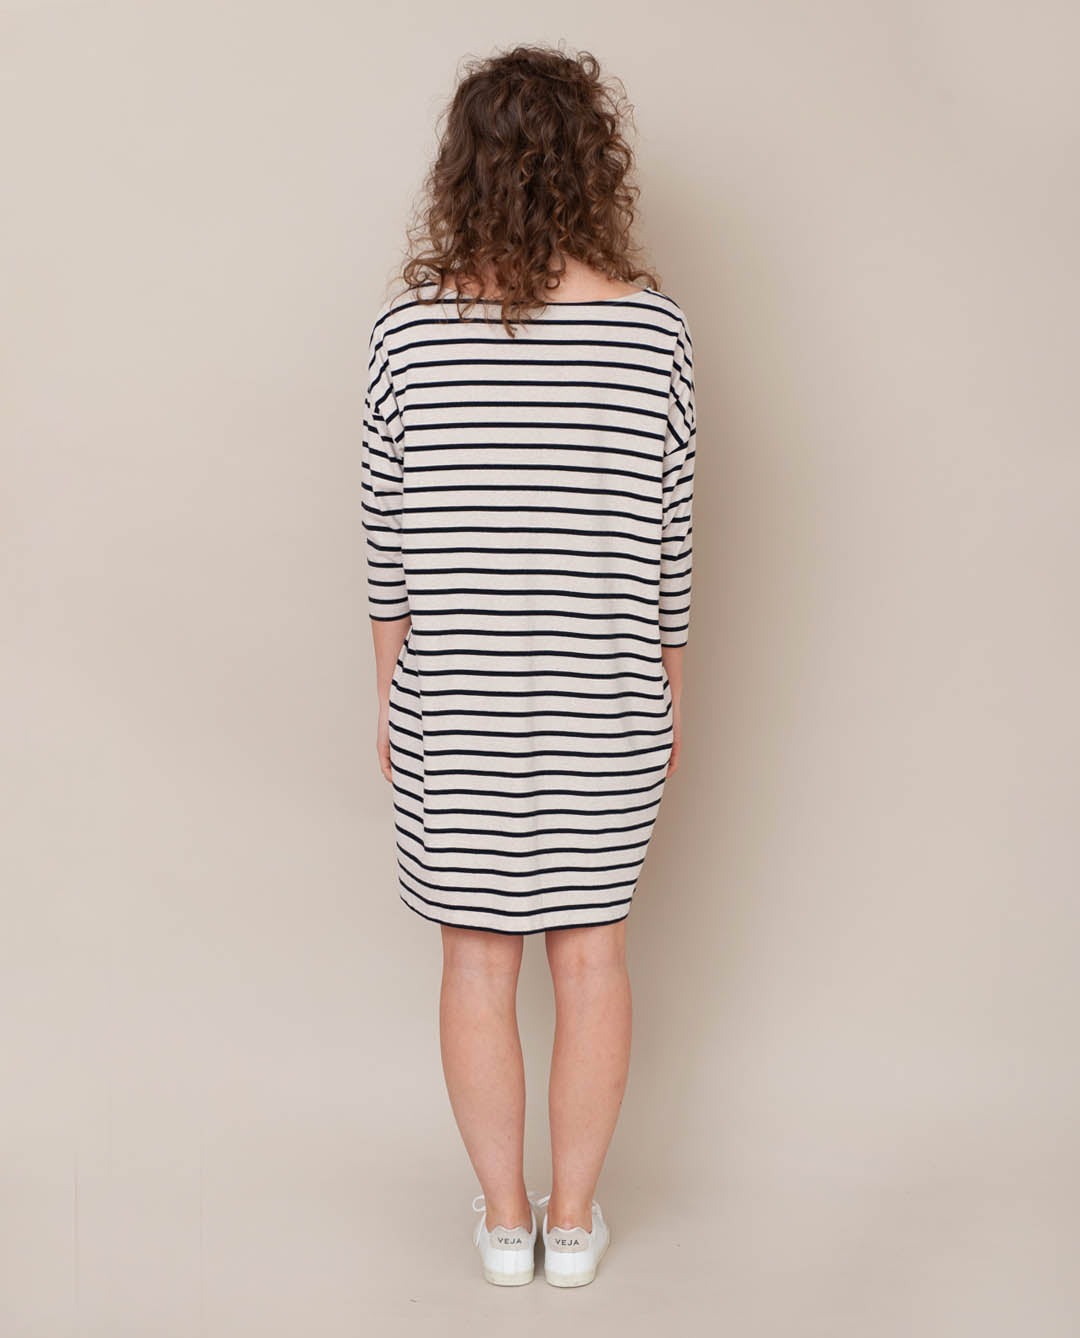 Sophie-Sue Organic Cotton Dress In Bone Marl & Black